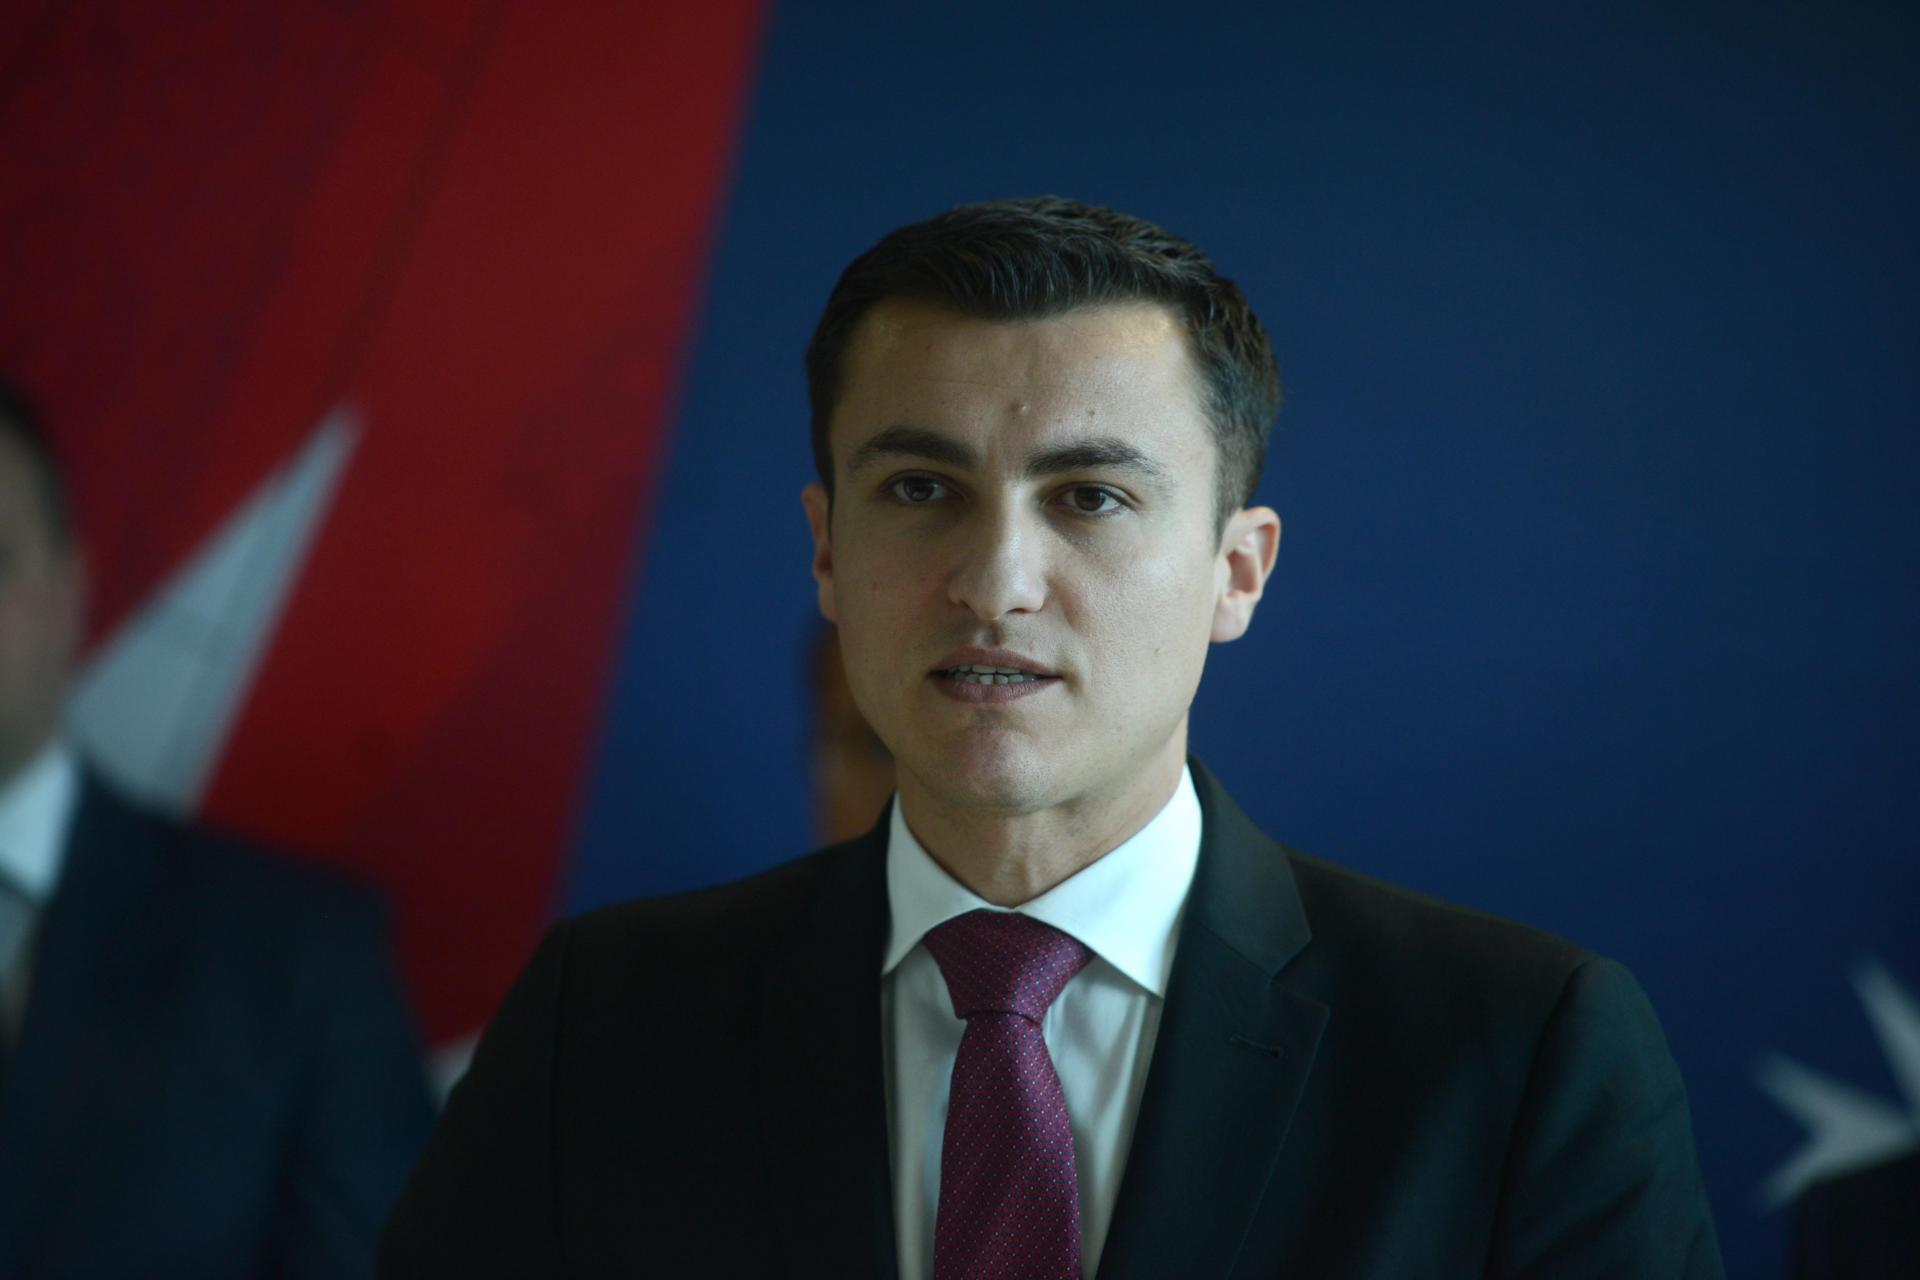 Silvio Schembri, who was appointed economy minister in January, lost responsibility for both Air Malta and Malta Enterprise.